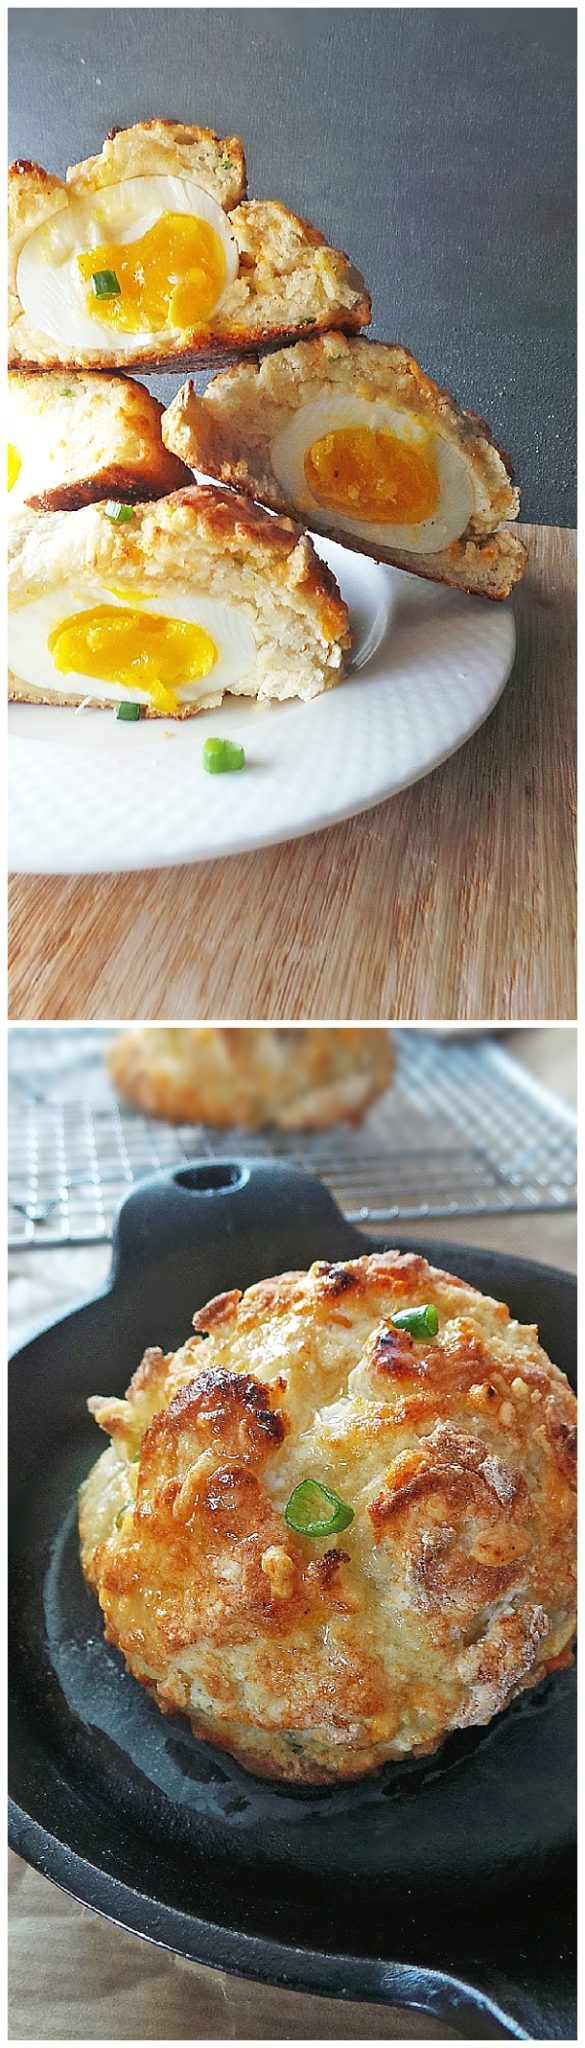 Surprise Cheddar Biscuits with Soft Boiled Egg inside Recipe via Vodka and Biscuits - The Best Homemade Biscuits Recipes - Quick, Easy and Delicious Bread Sides for Breakfast, Brunch, Lunch and Family Dinner!